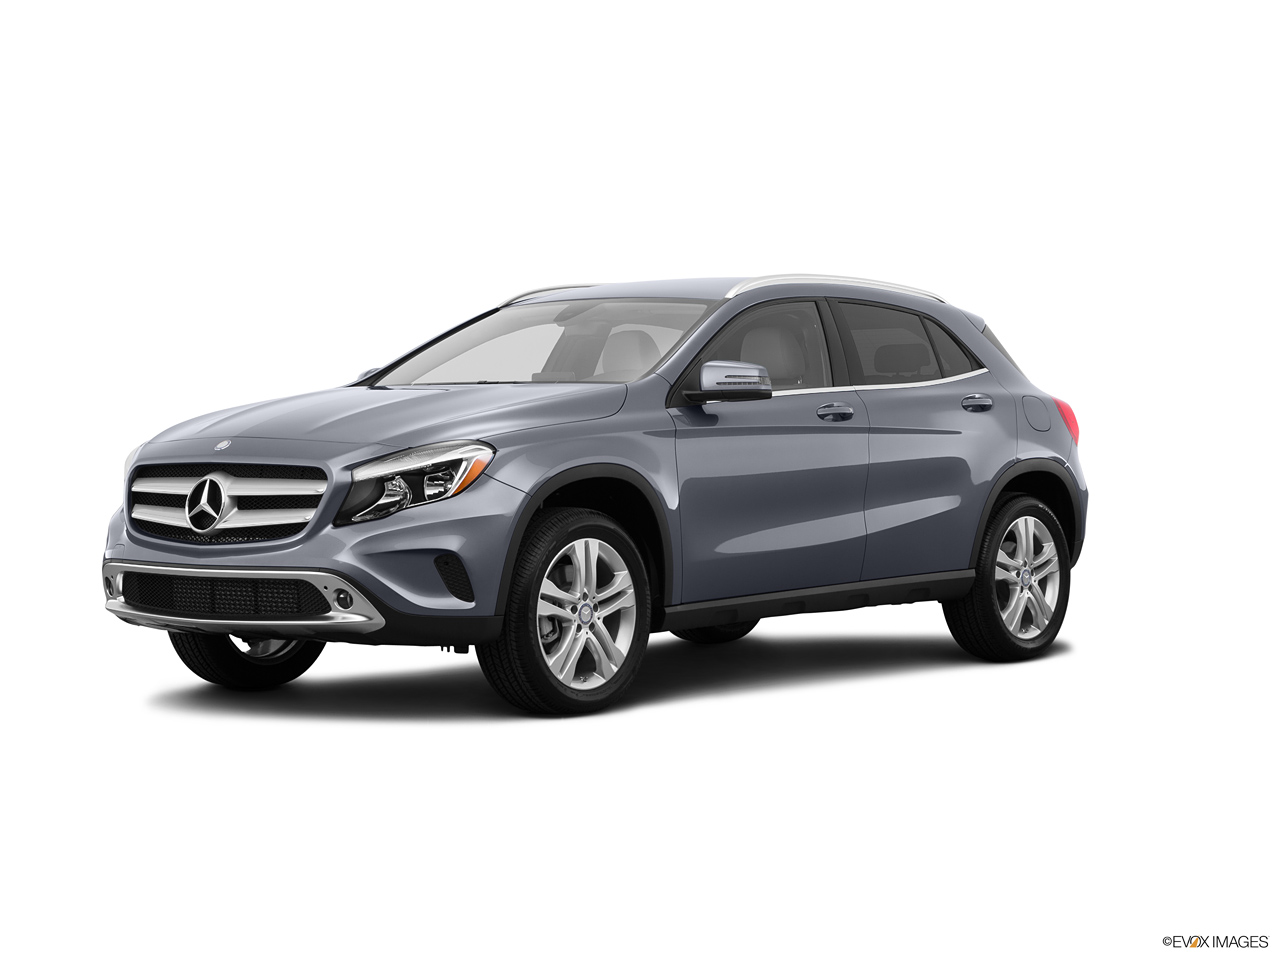 Mercedes benz gla 2016 250 in kuwait new car prices for Mercedes benz gla 250 price